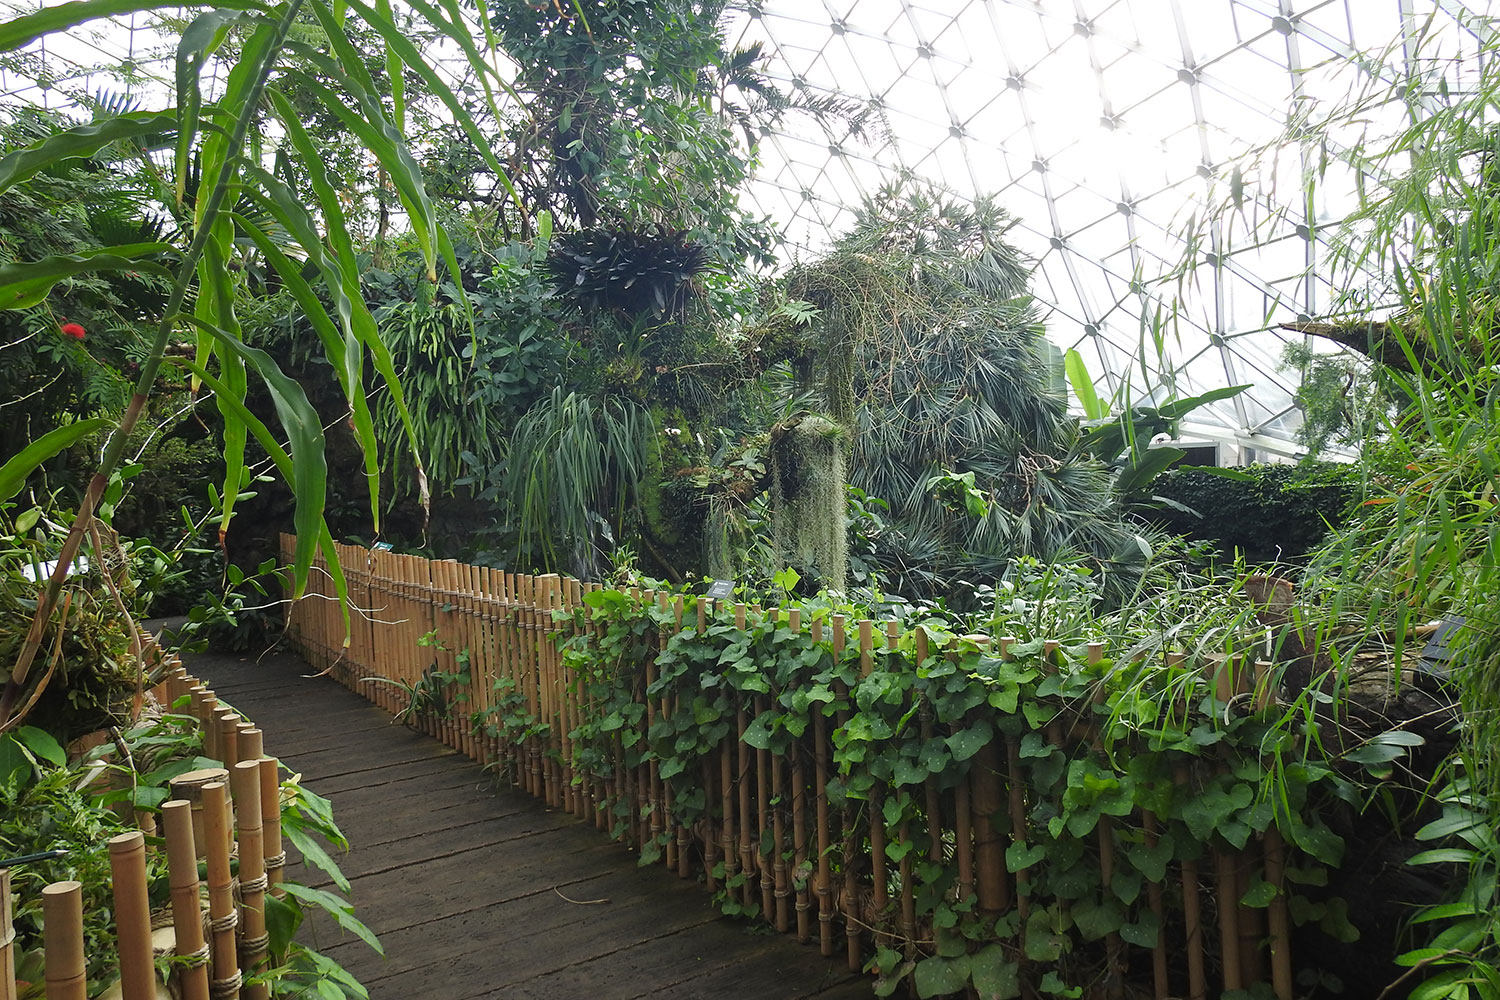 Climatron conservatory interior with bamboo bridge in foreground, surrounded by lush, tropical foliage and the hexagonal glass dome above